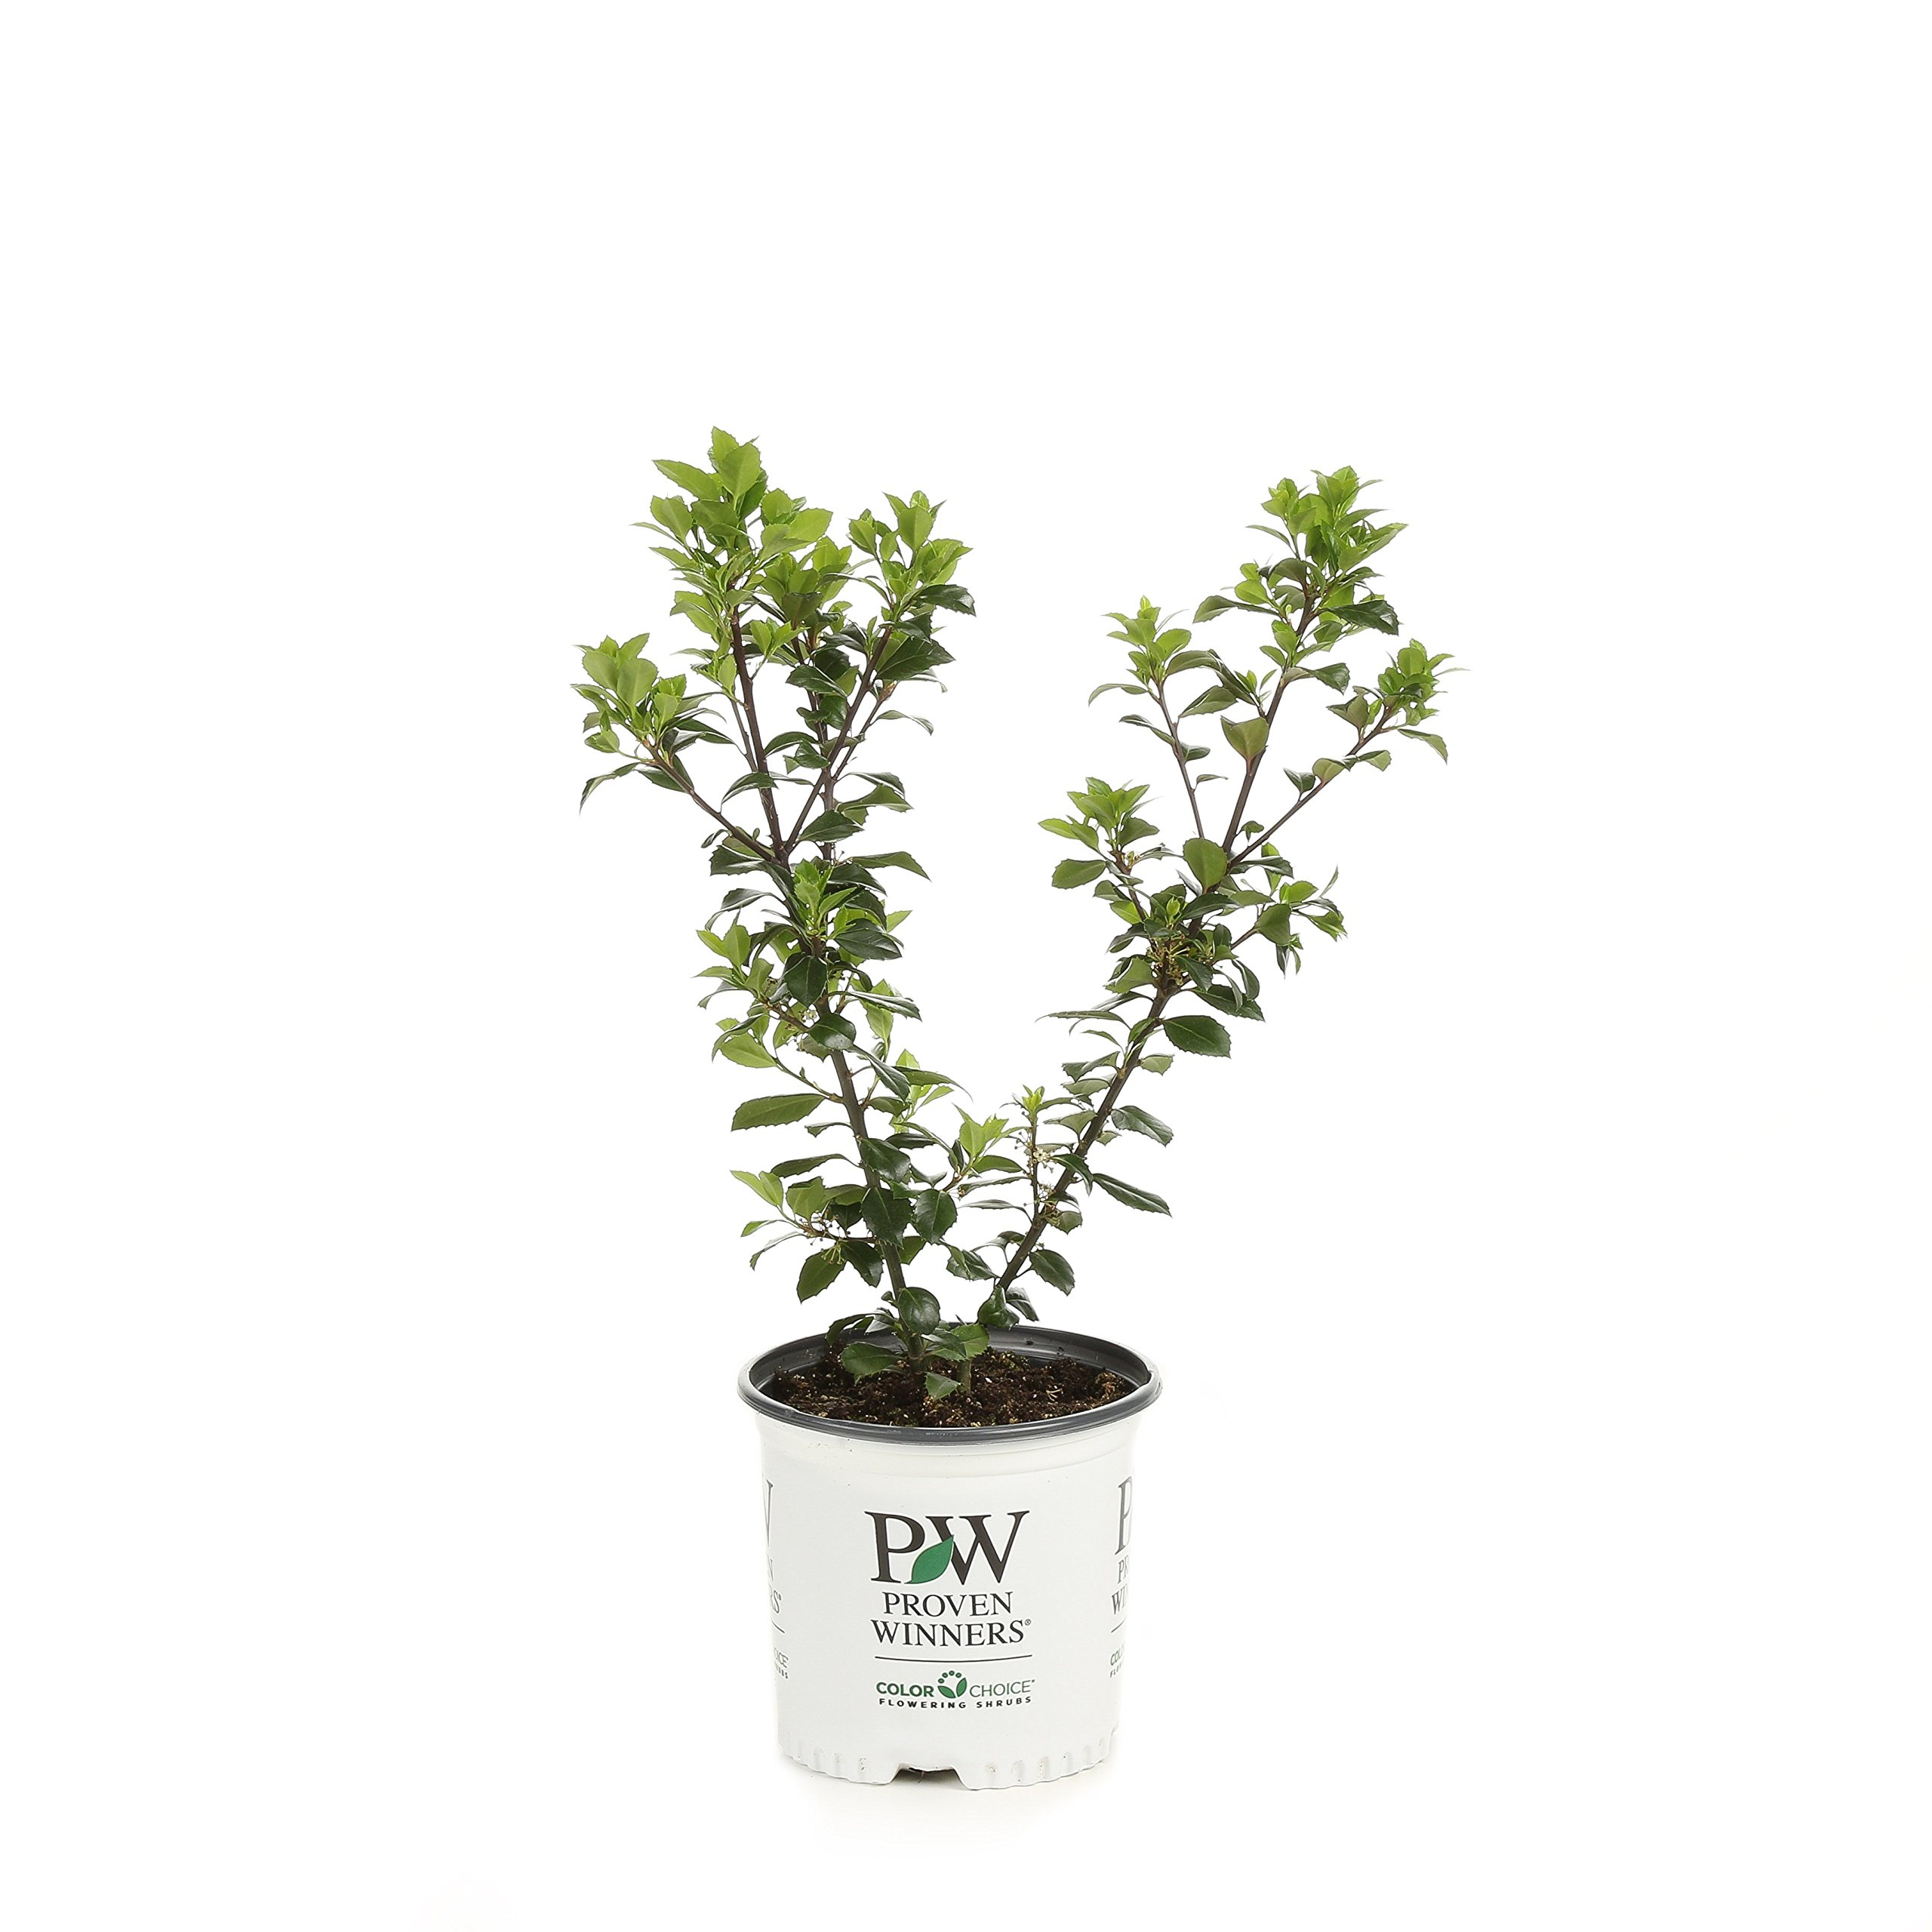 Castle Wall Blue Holly (Ilex) Live Evergreen Shrub, White Flowers, Pollinator, 1 Gallon by Proven Winners